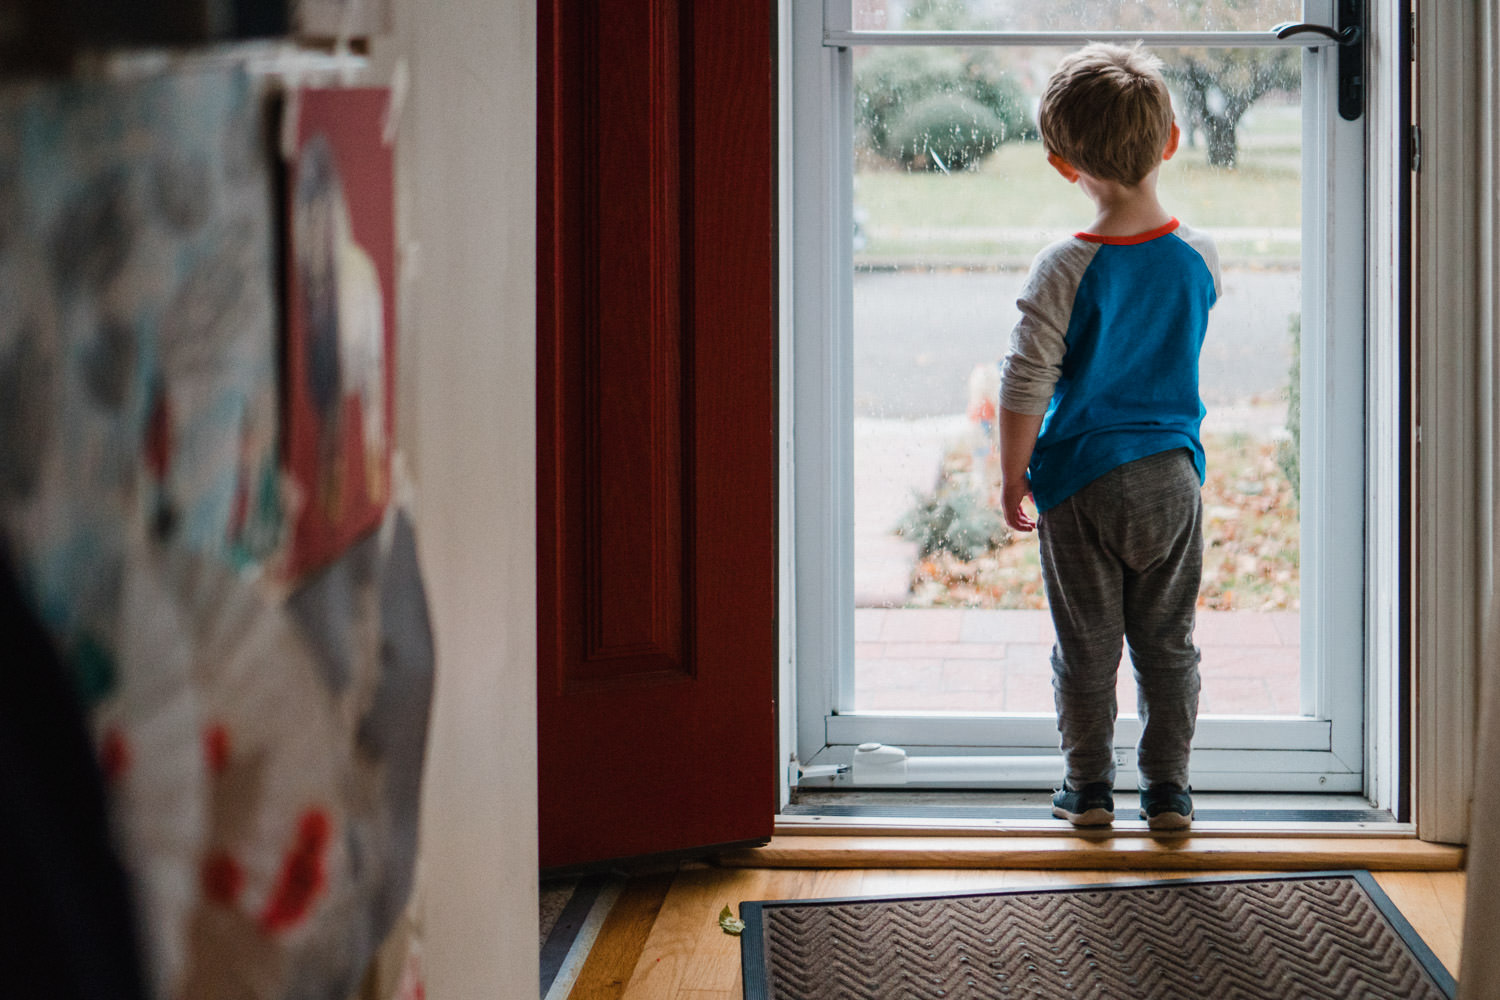 A little boy looks out the storm door to the street.